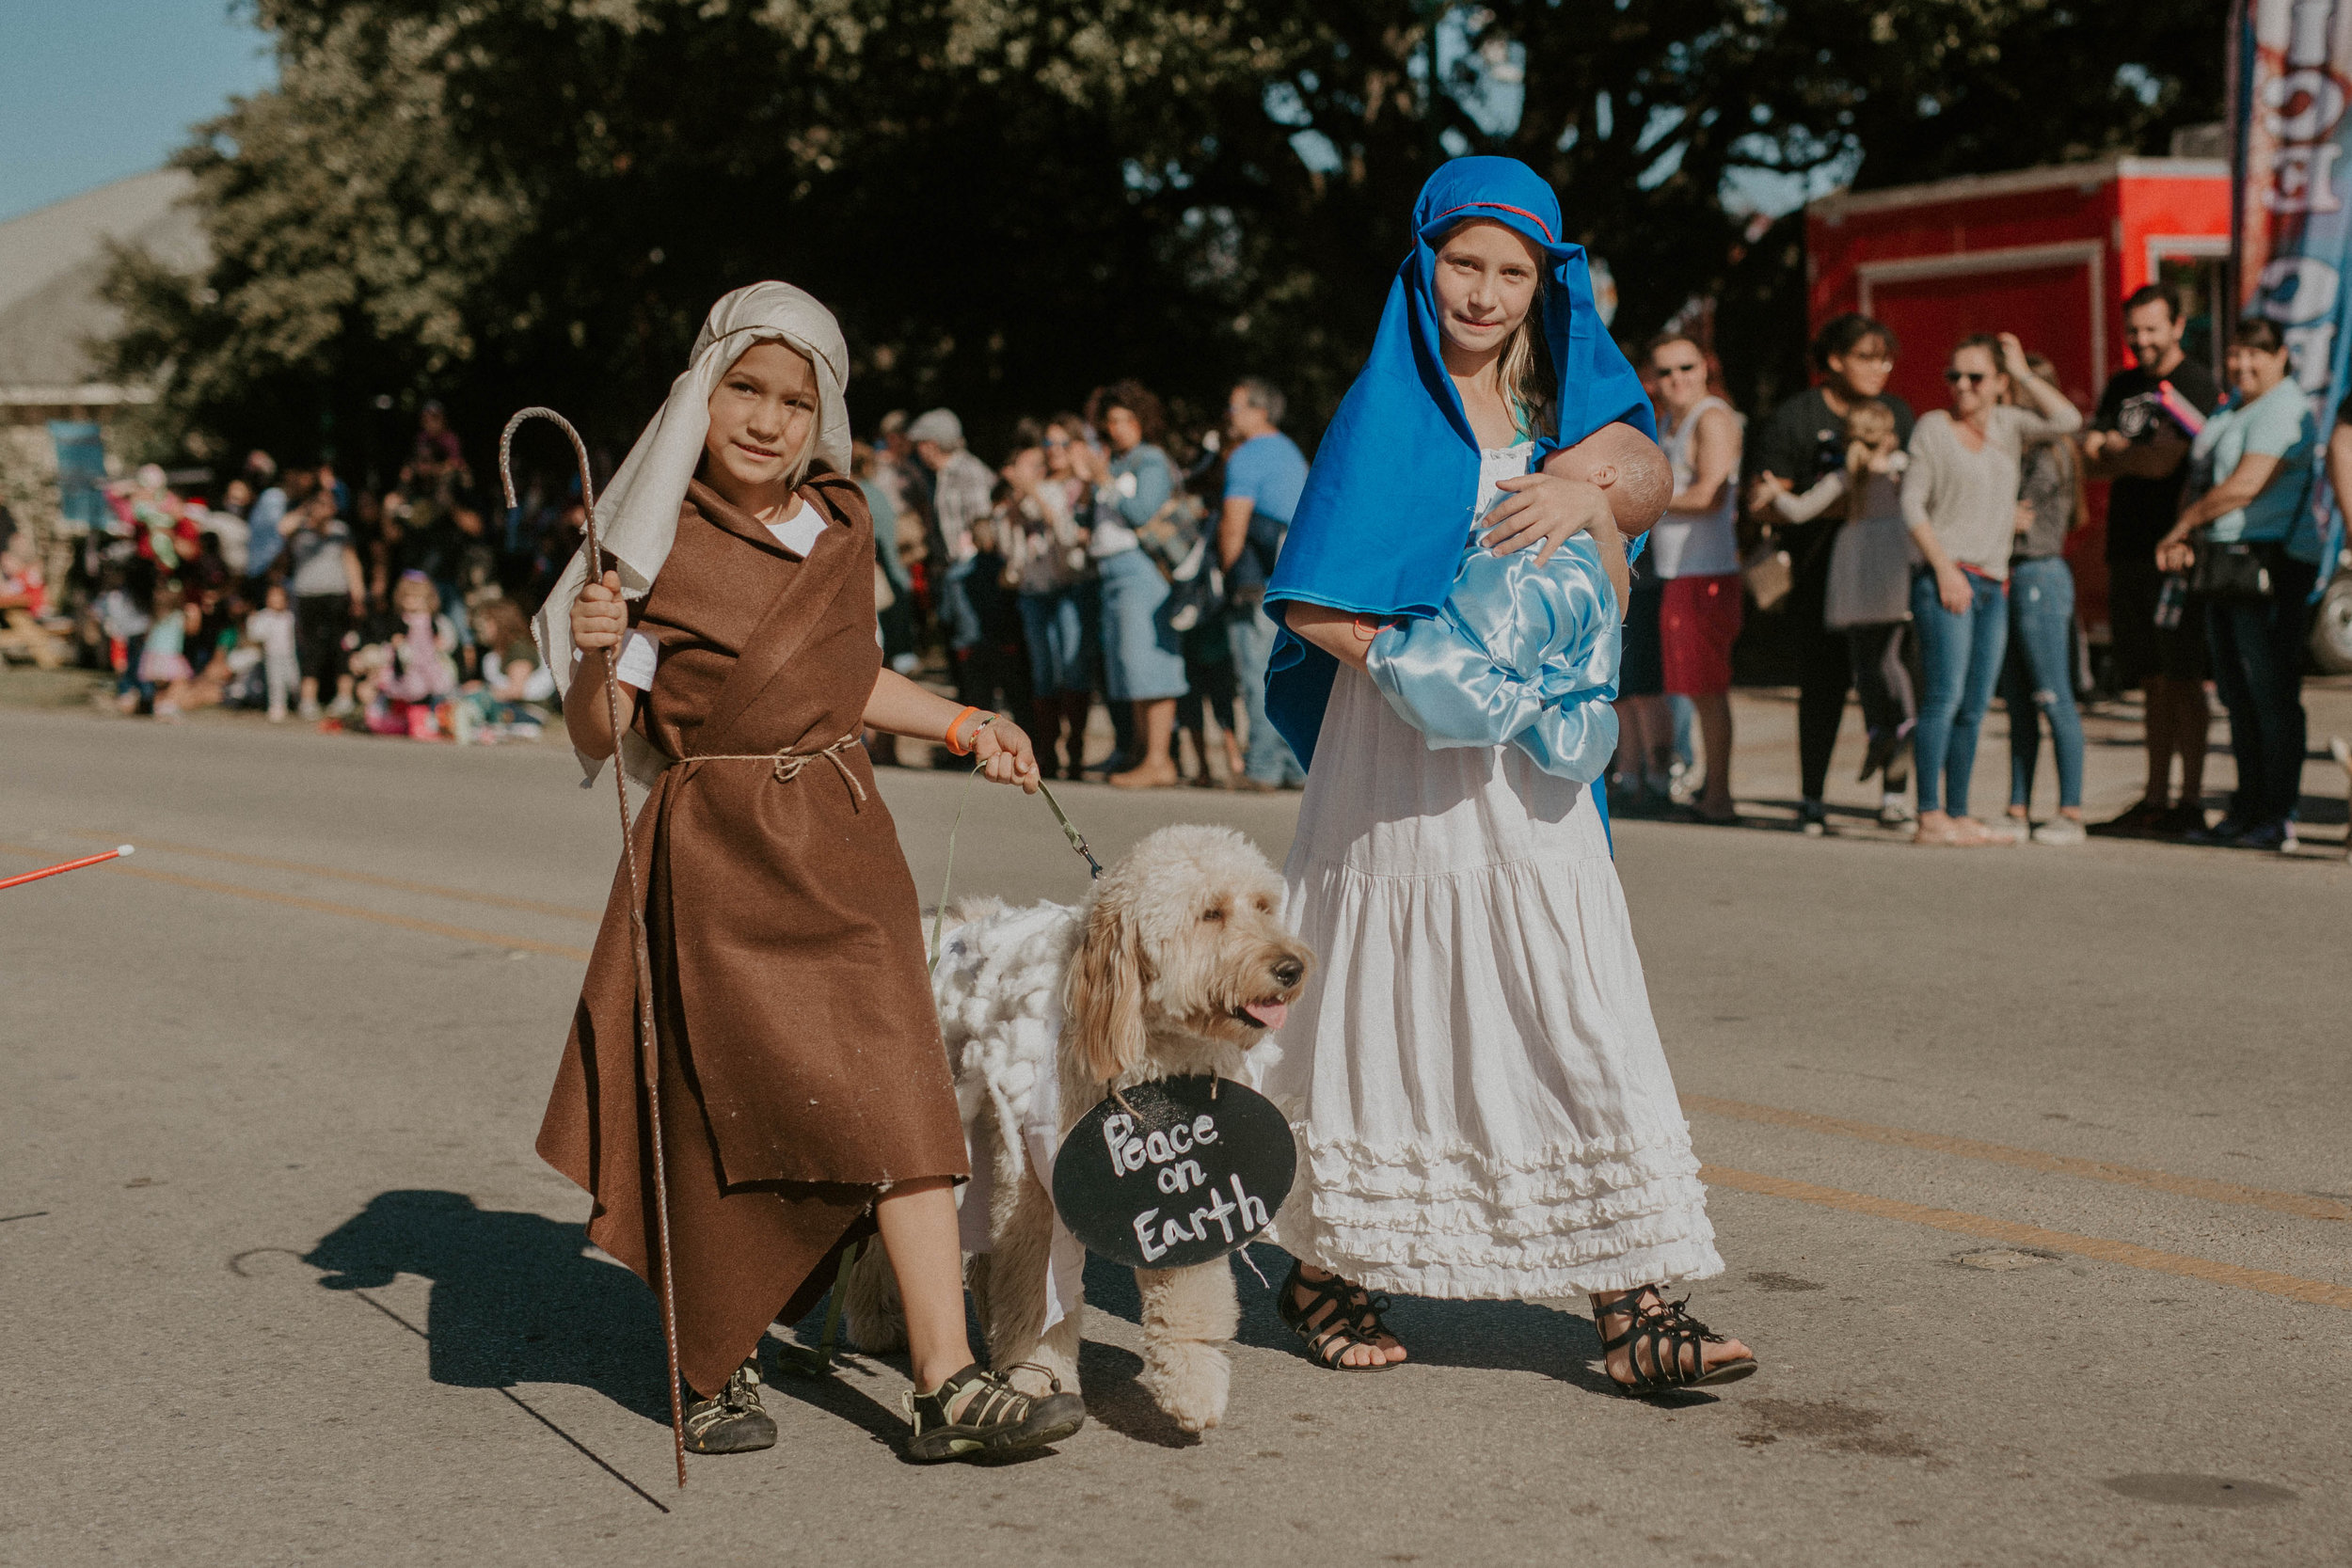 Reindog parade - Dogs from all around will gather to trot down the street in their best holiday costumes and outfits. The pet-parent of the most festive dog will win a prize! The Reindog Parade will take place on Sunday, December 8 at 2:00 p.m. to kick-off the festivities.